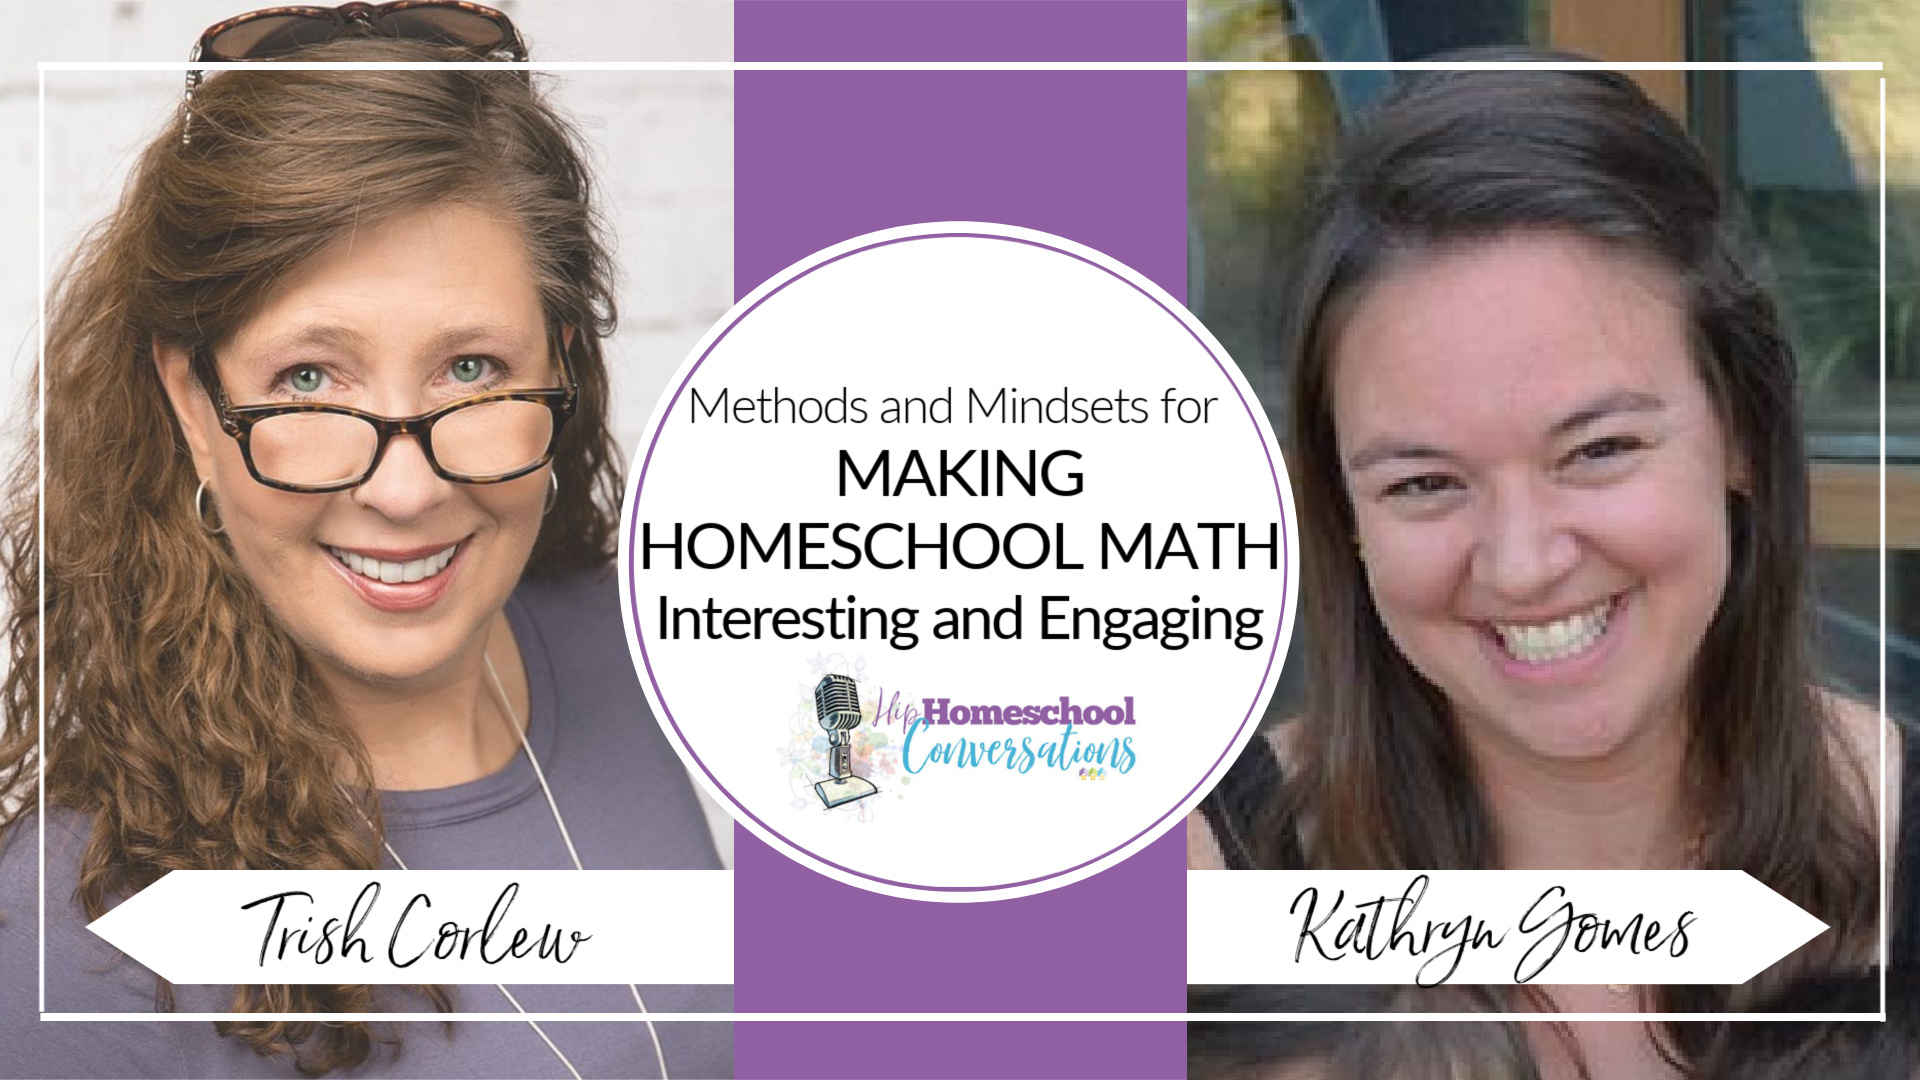 In today's podcast, we have an interesting and insightful conversation with author and speaker Kathryn Gomes, author of Apologia's elementary math curriculum and second-generation homeschooling mother of three who surprised herself by falling in love with math!